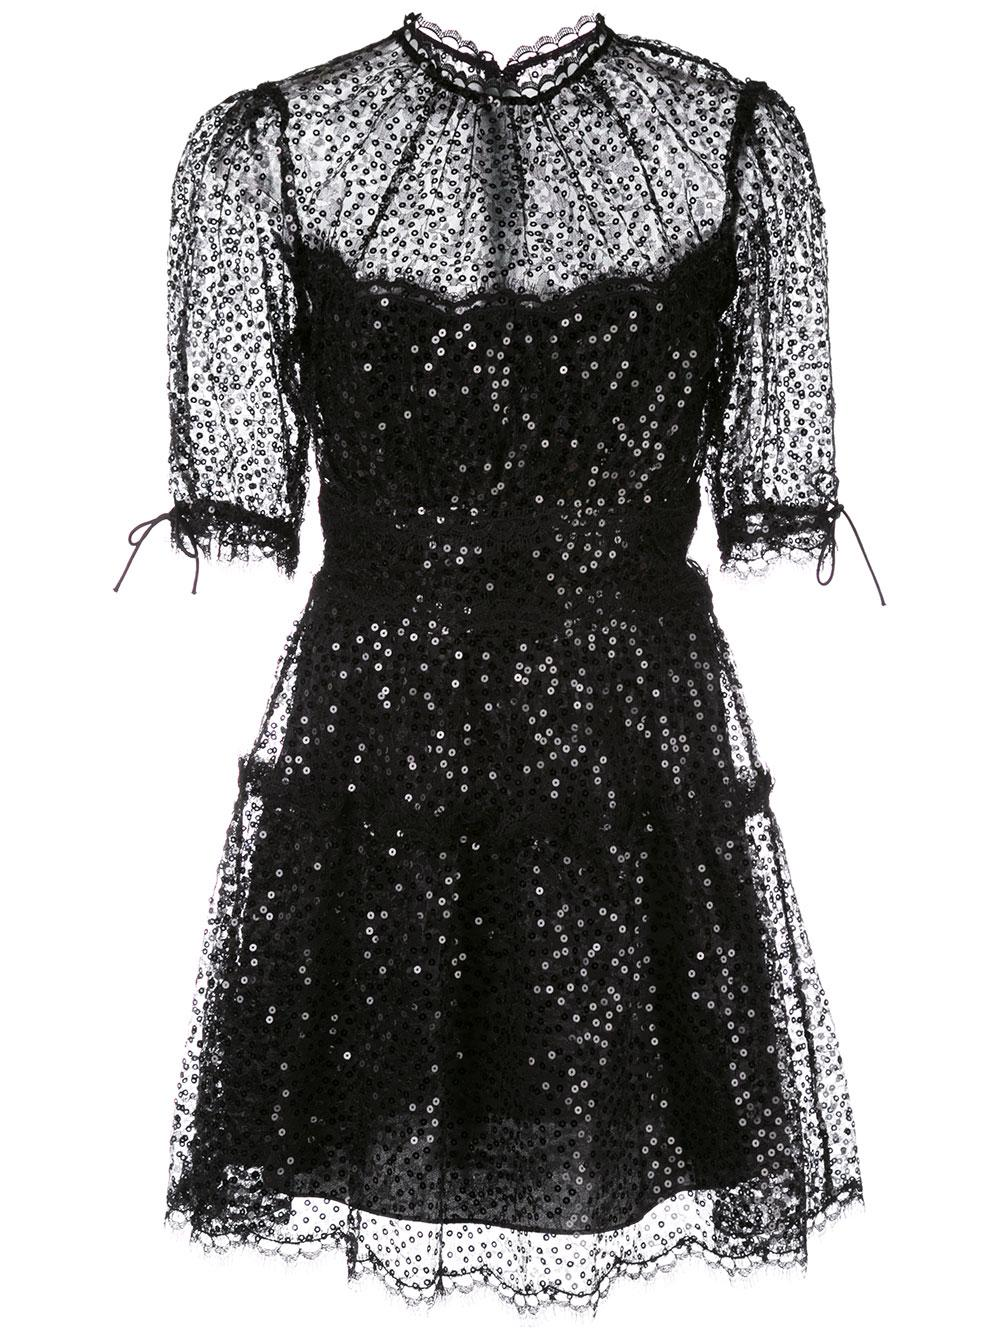 Short Sleeves Sequin Embroidered Lace Mini Dress Item # 120-1096-S